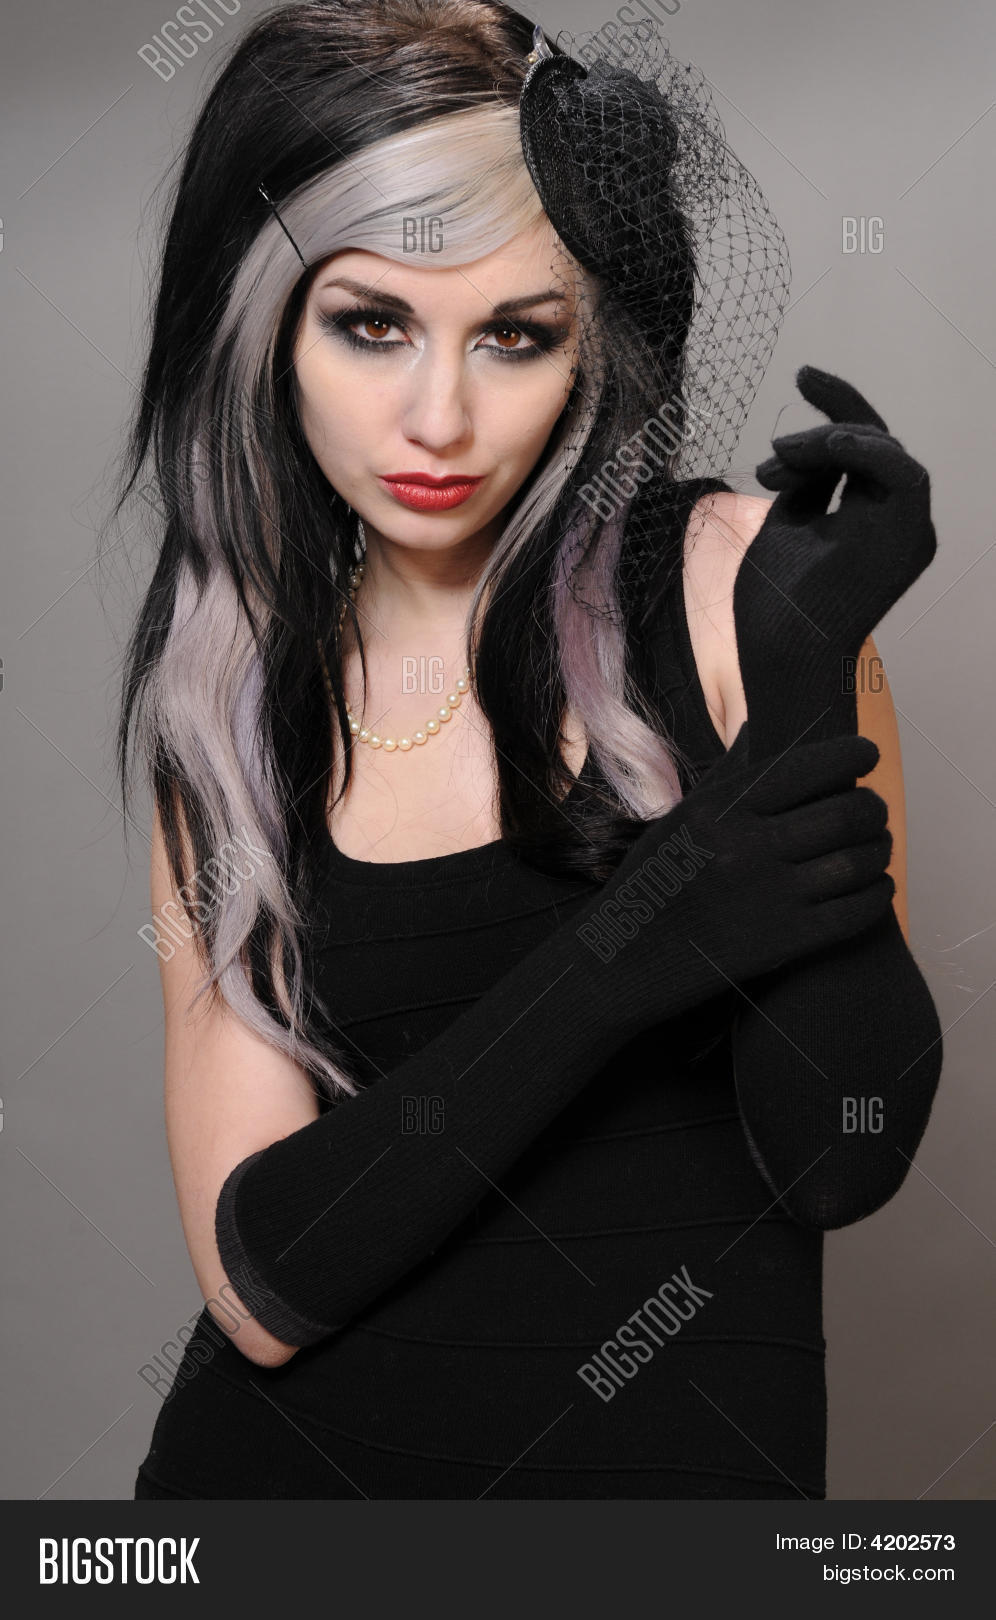 black,clothing,dress,female,girl,gloves,goth,gothic,hair,halloween,long,lovely,monochrome,petite,pretty,scary,short,small,spooky,teen,teenager,tiny,vintage girl,white,woman,young